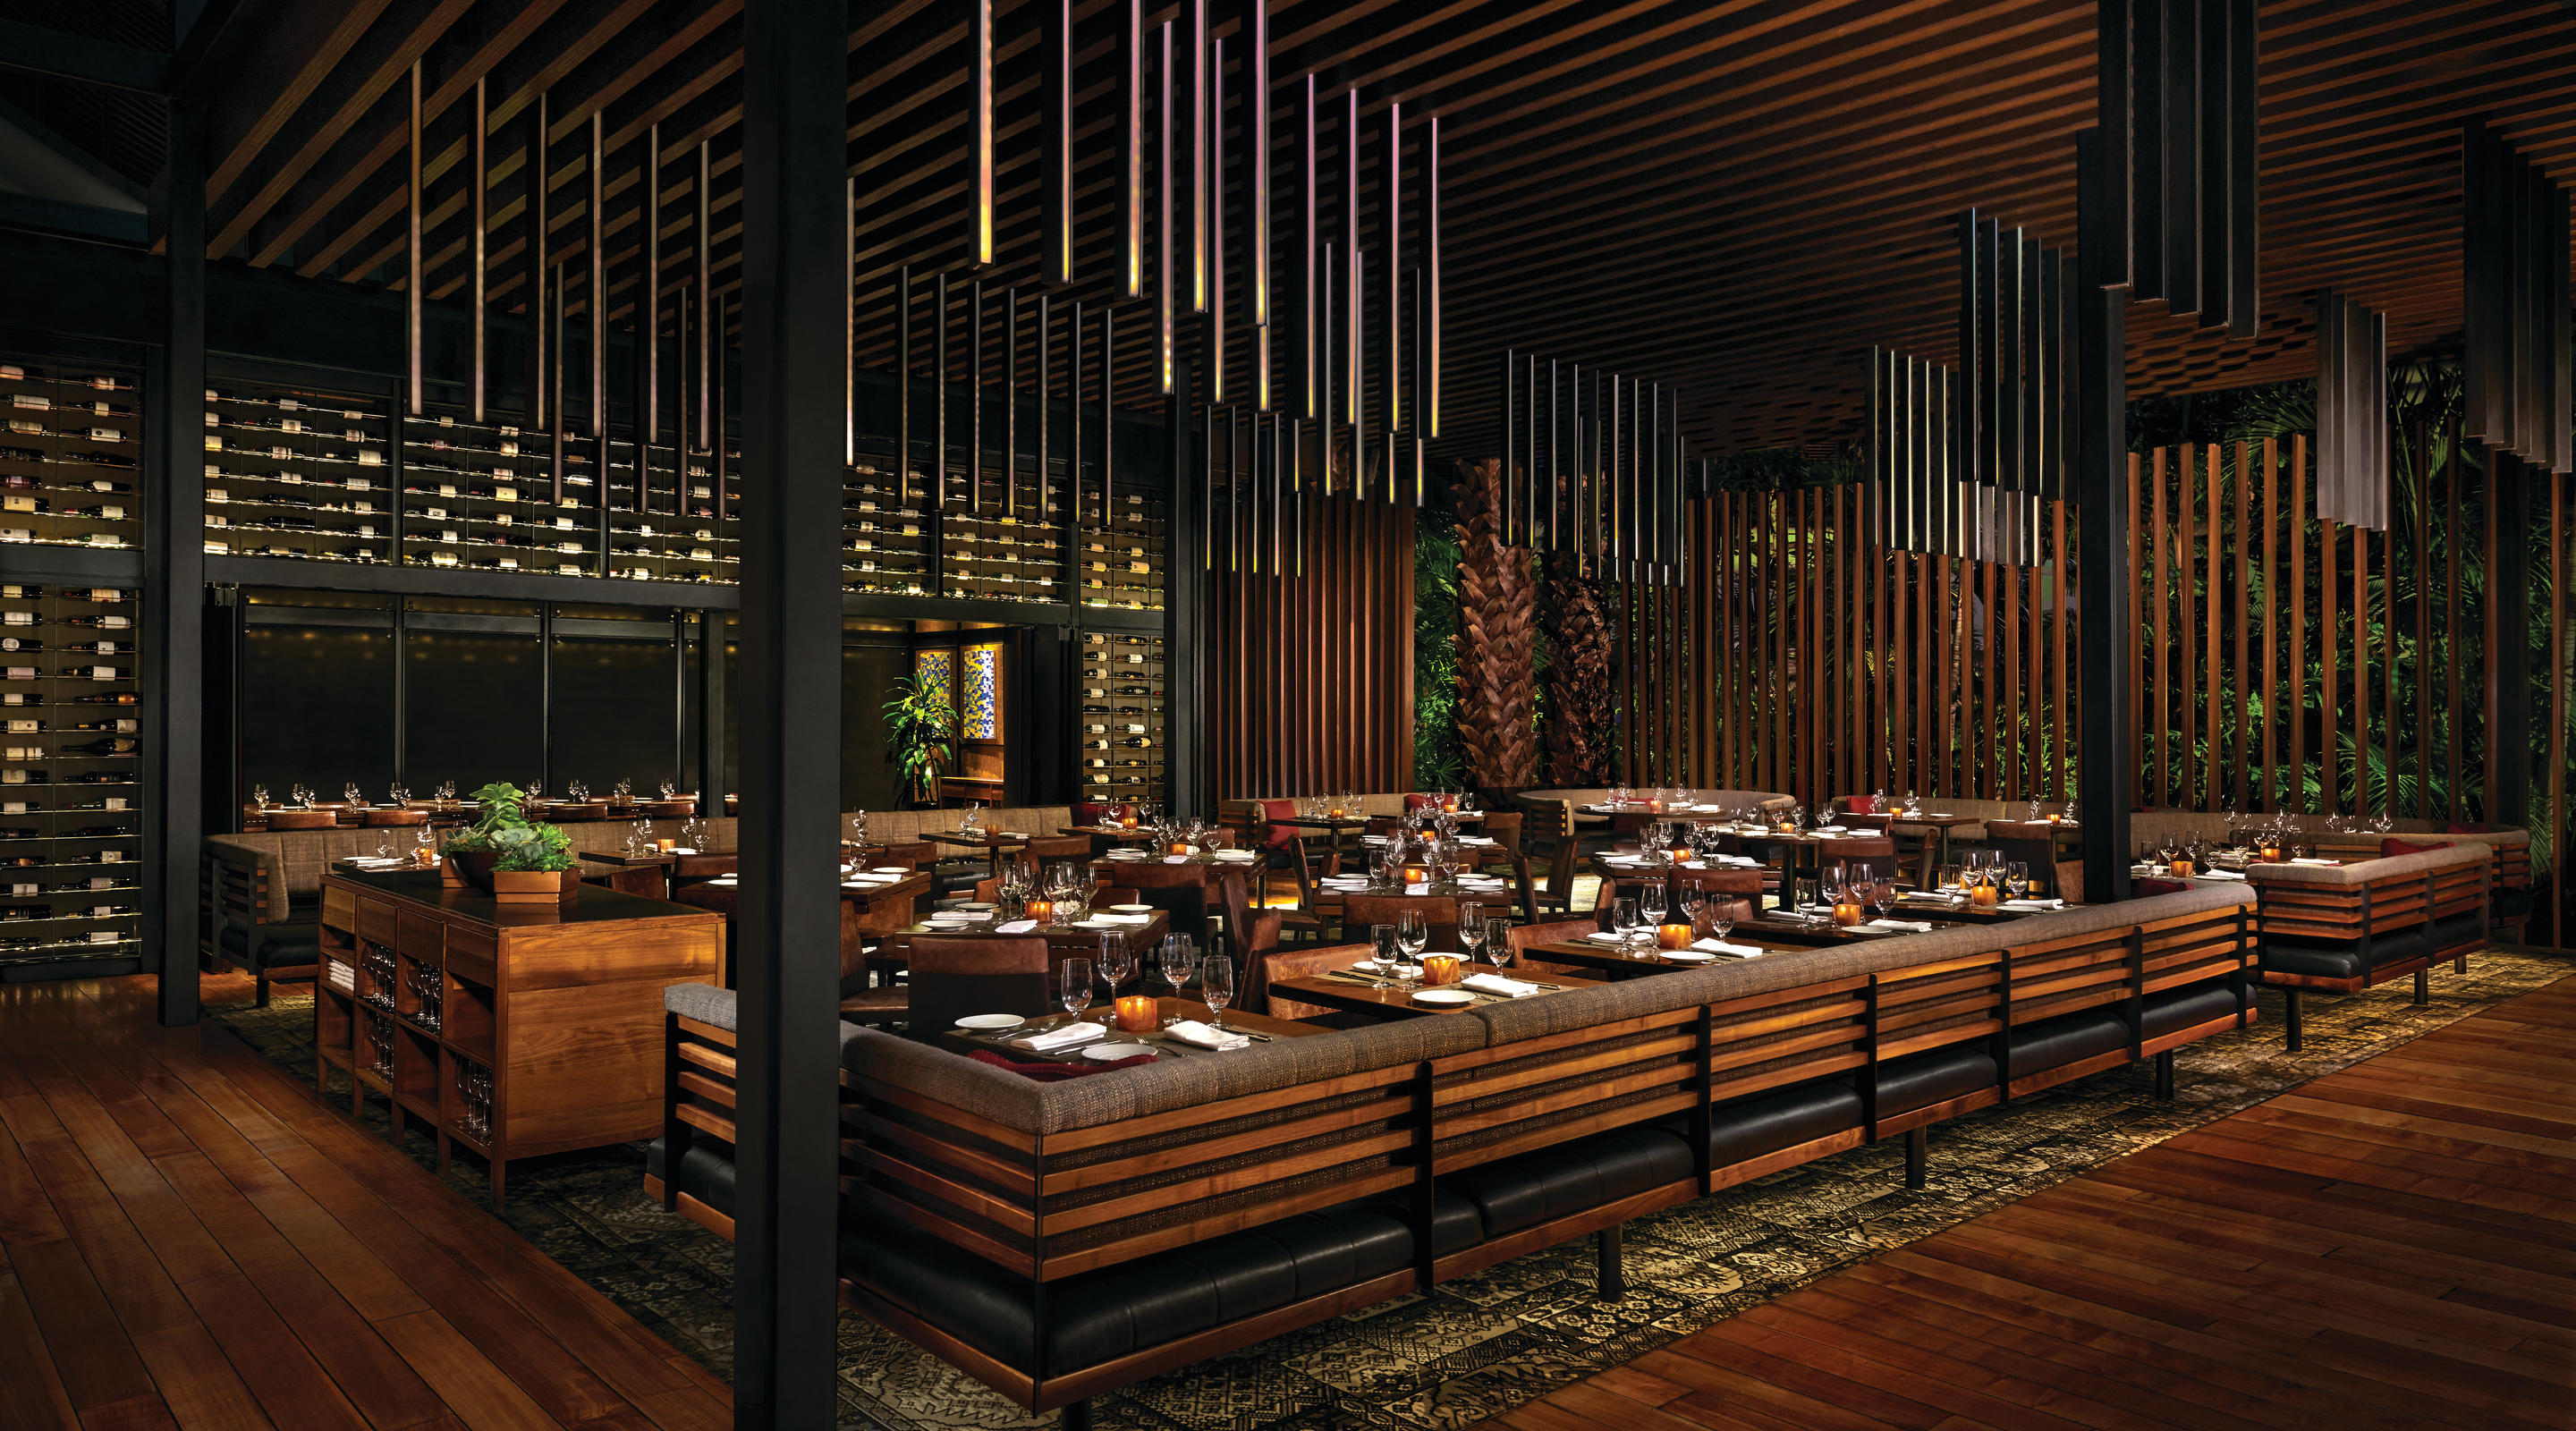 Dining room of Tom Colicchio's Heritage Steak.